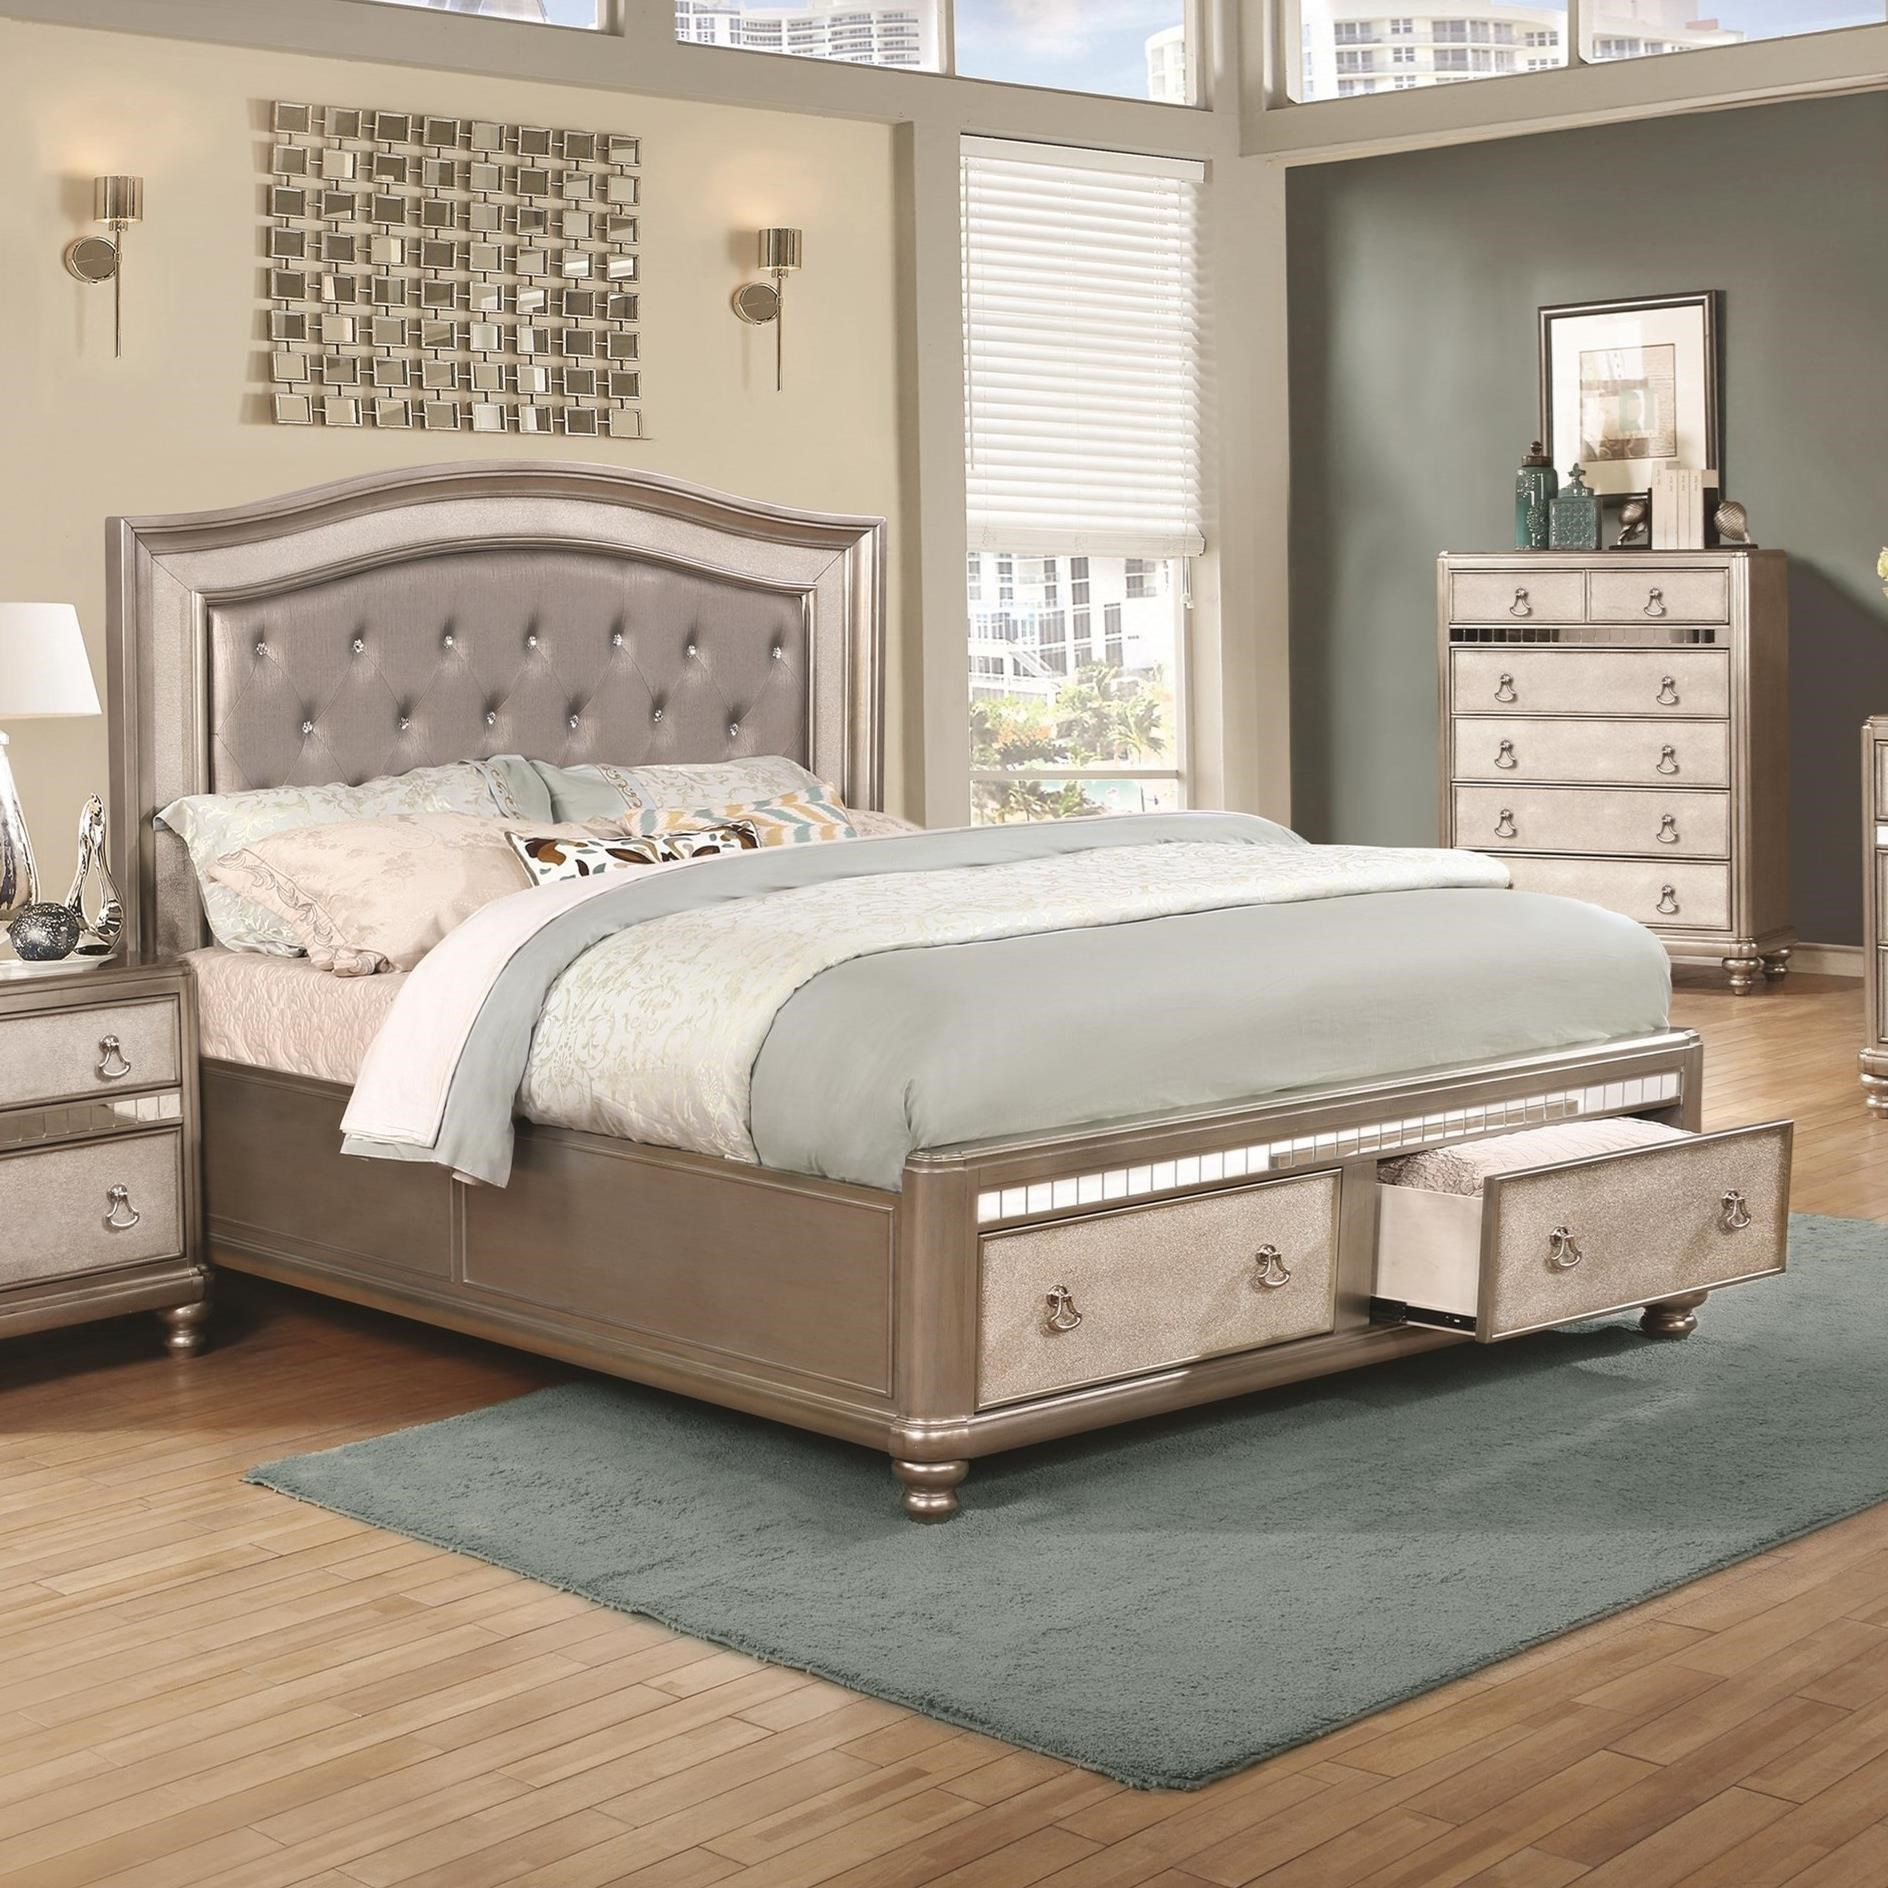 Bling game upholstered california king bed with footboard for Upholstered king bed with storage